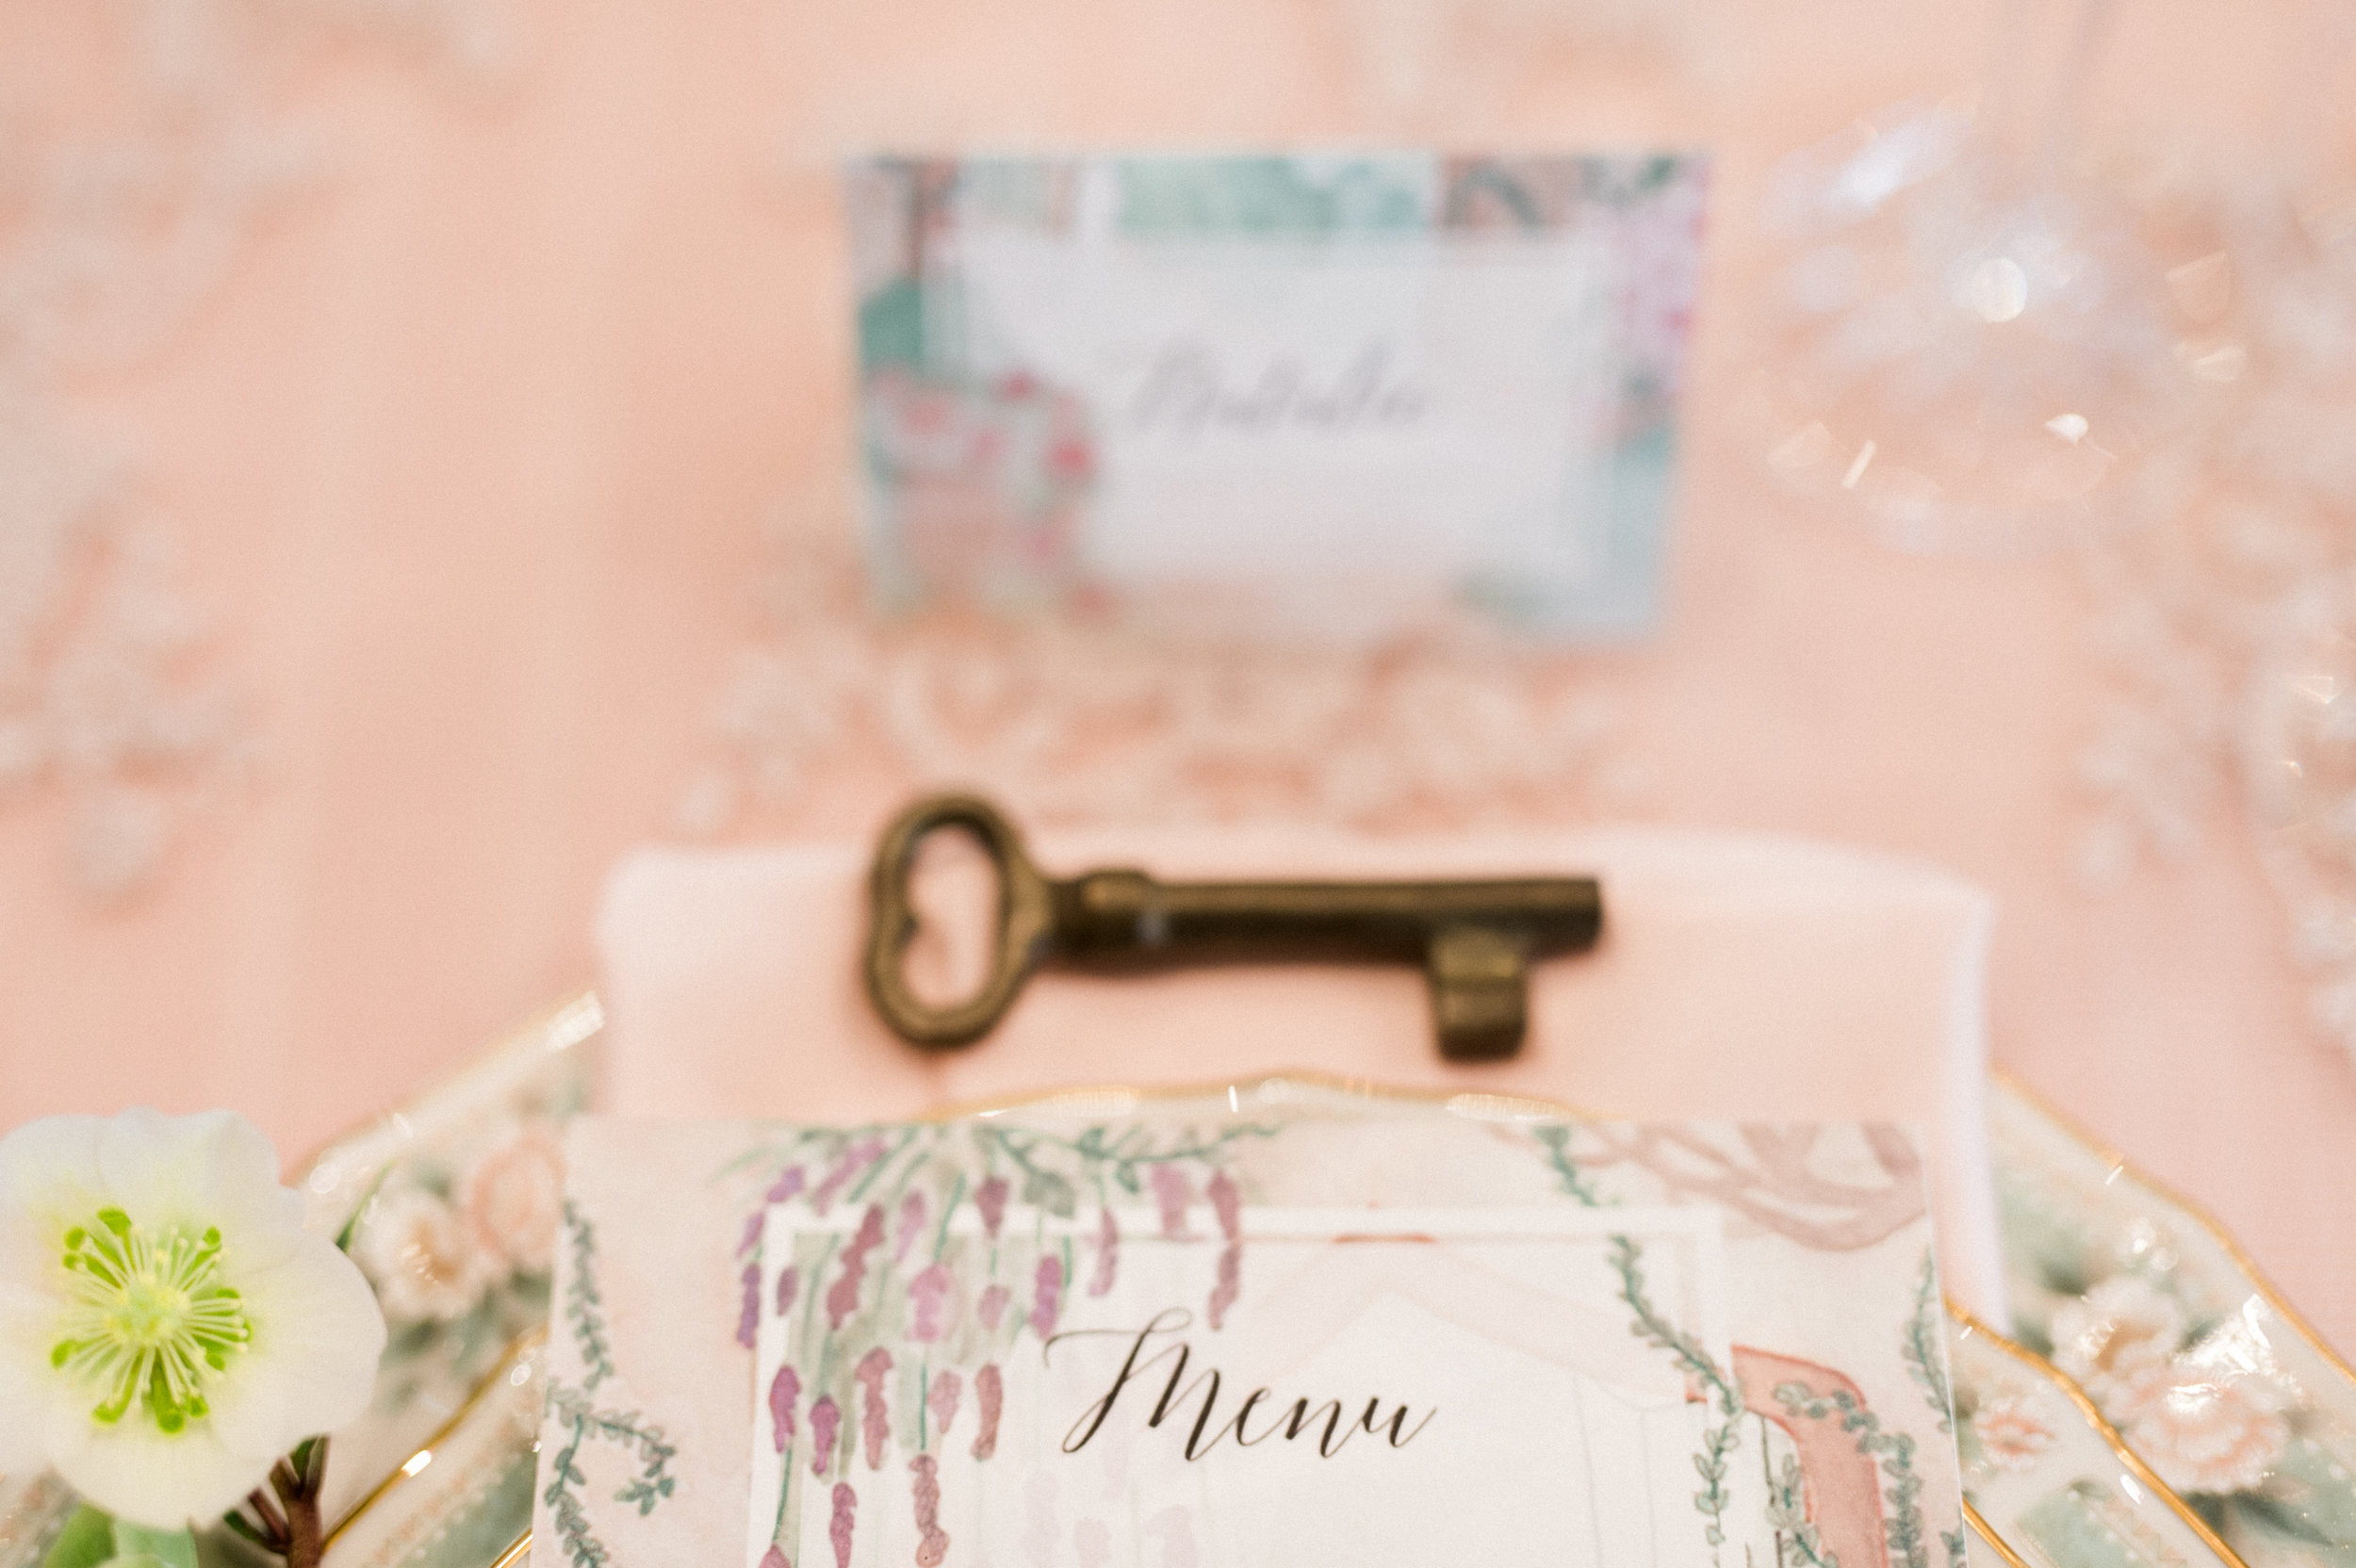 Watercolor Wedding Paper for Secret Garden  Wedding by Vie de Vic | Photo: Renee Hollingshead | viedevic.com